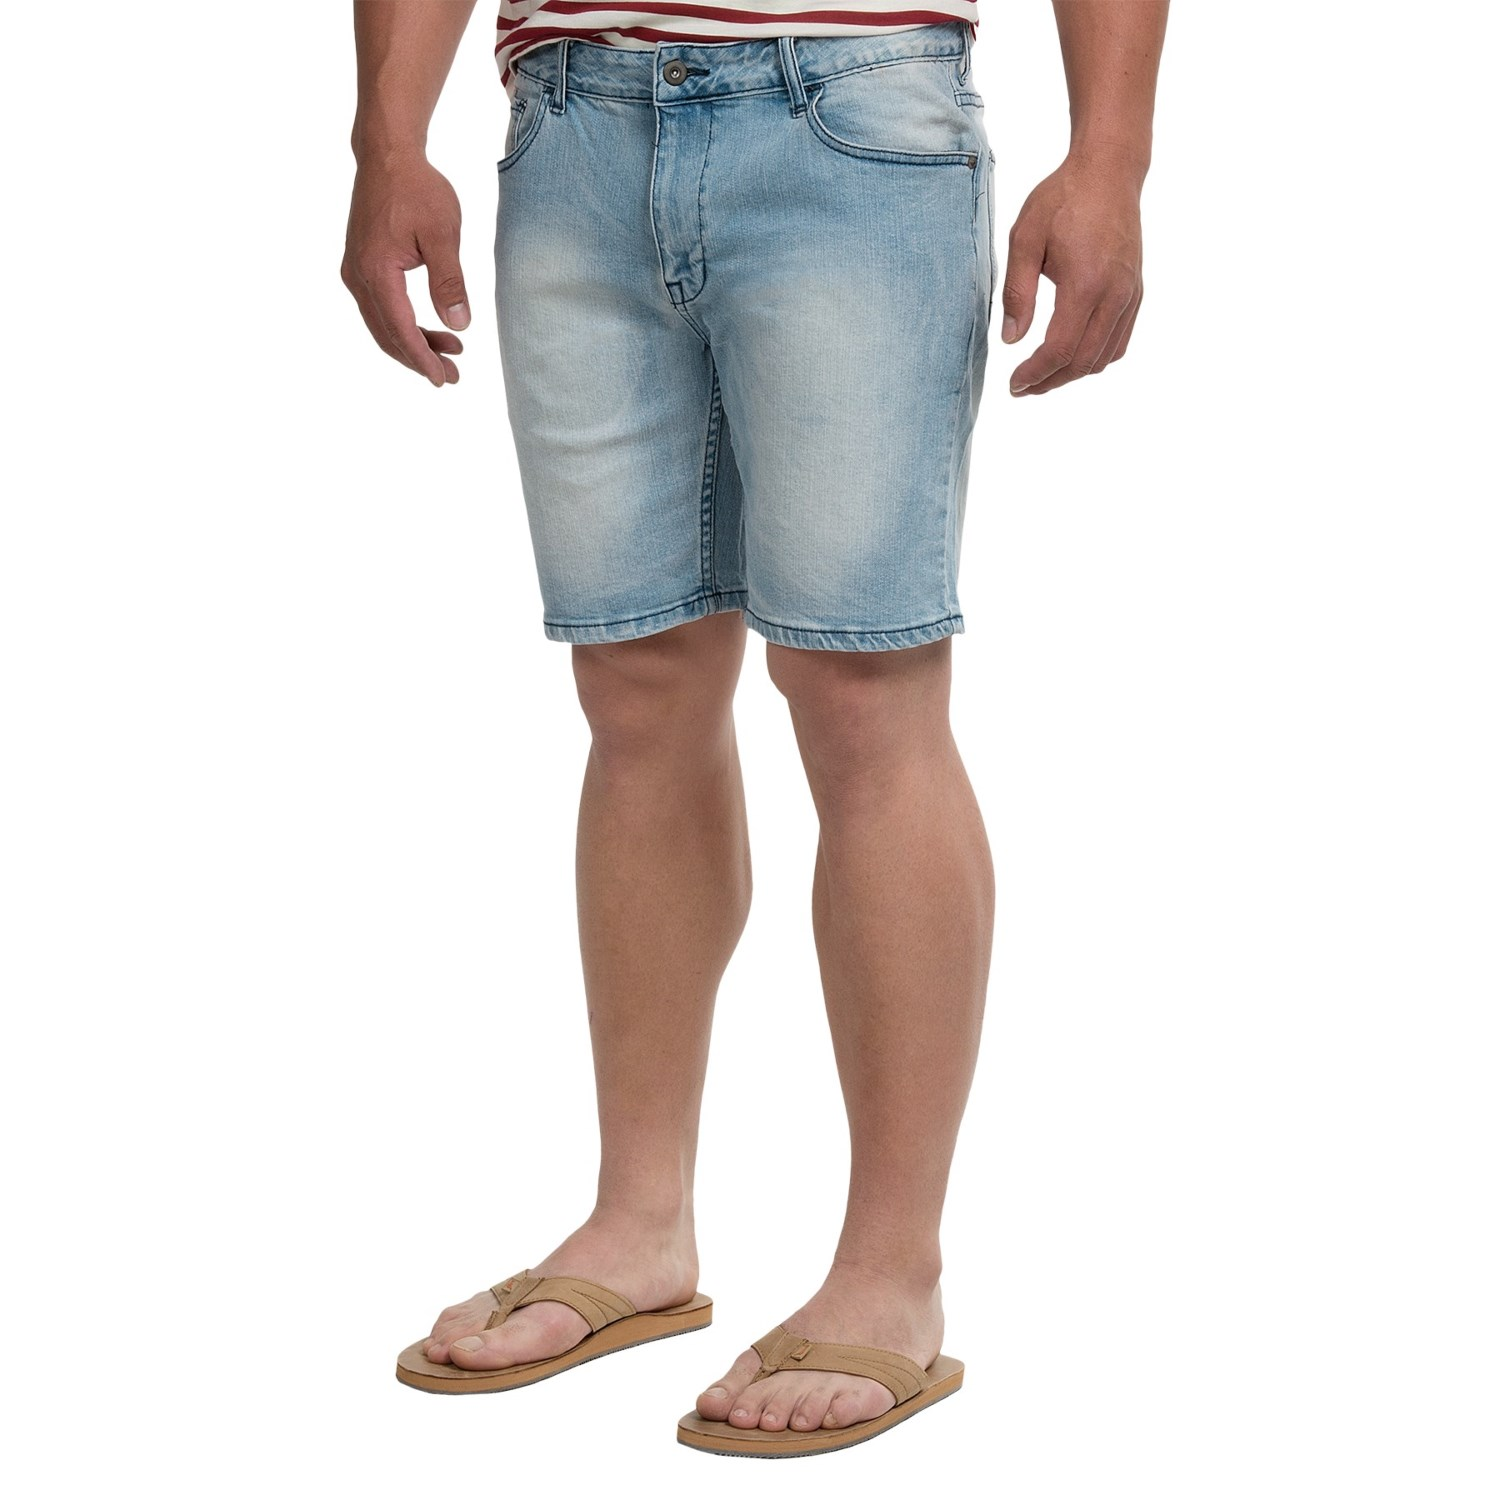 Mott & Grand Flat Front Jean Shorts (For Men) - Save 88%